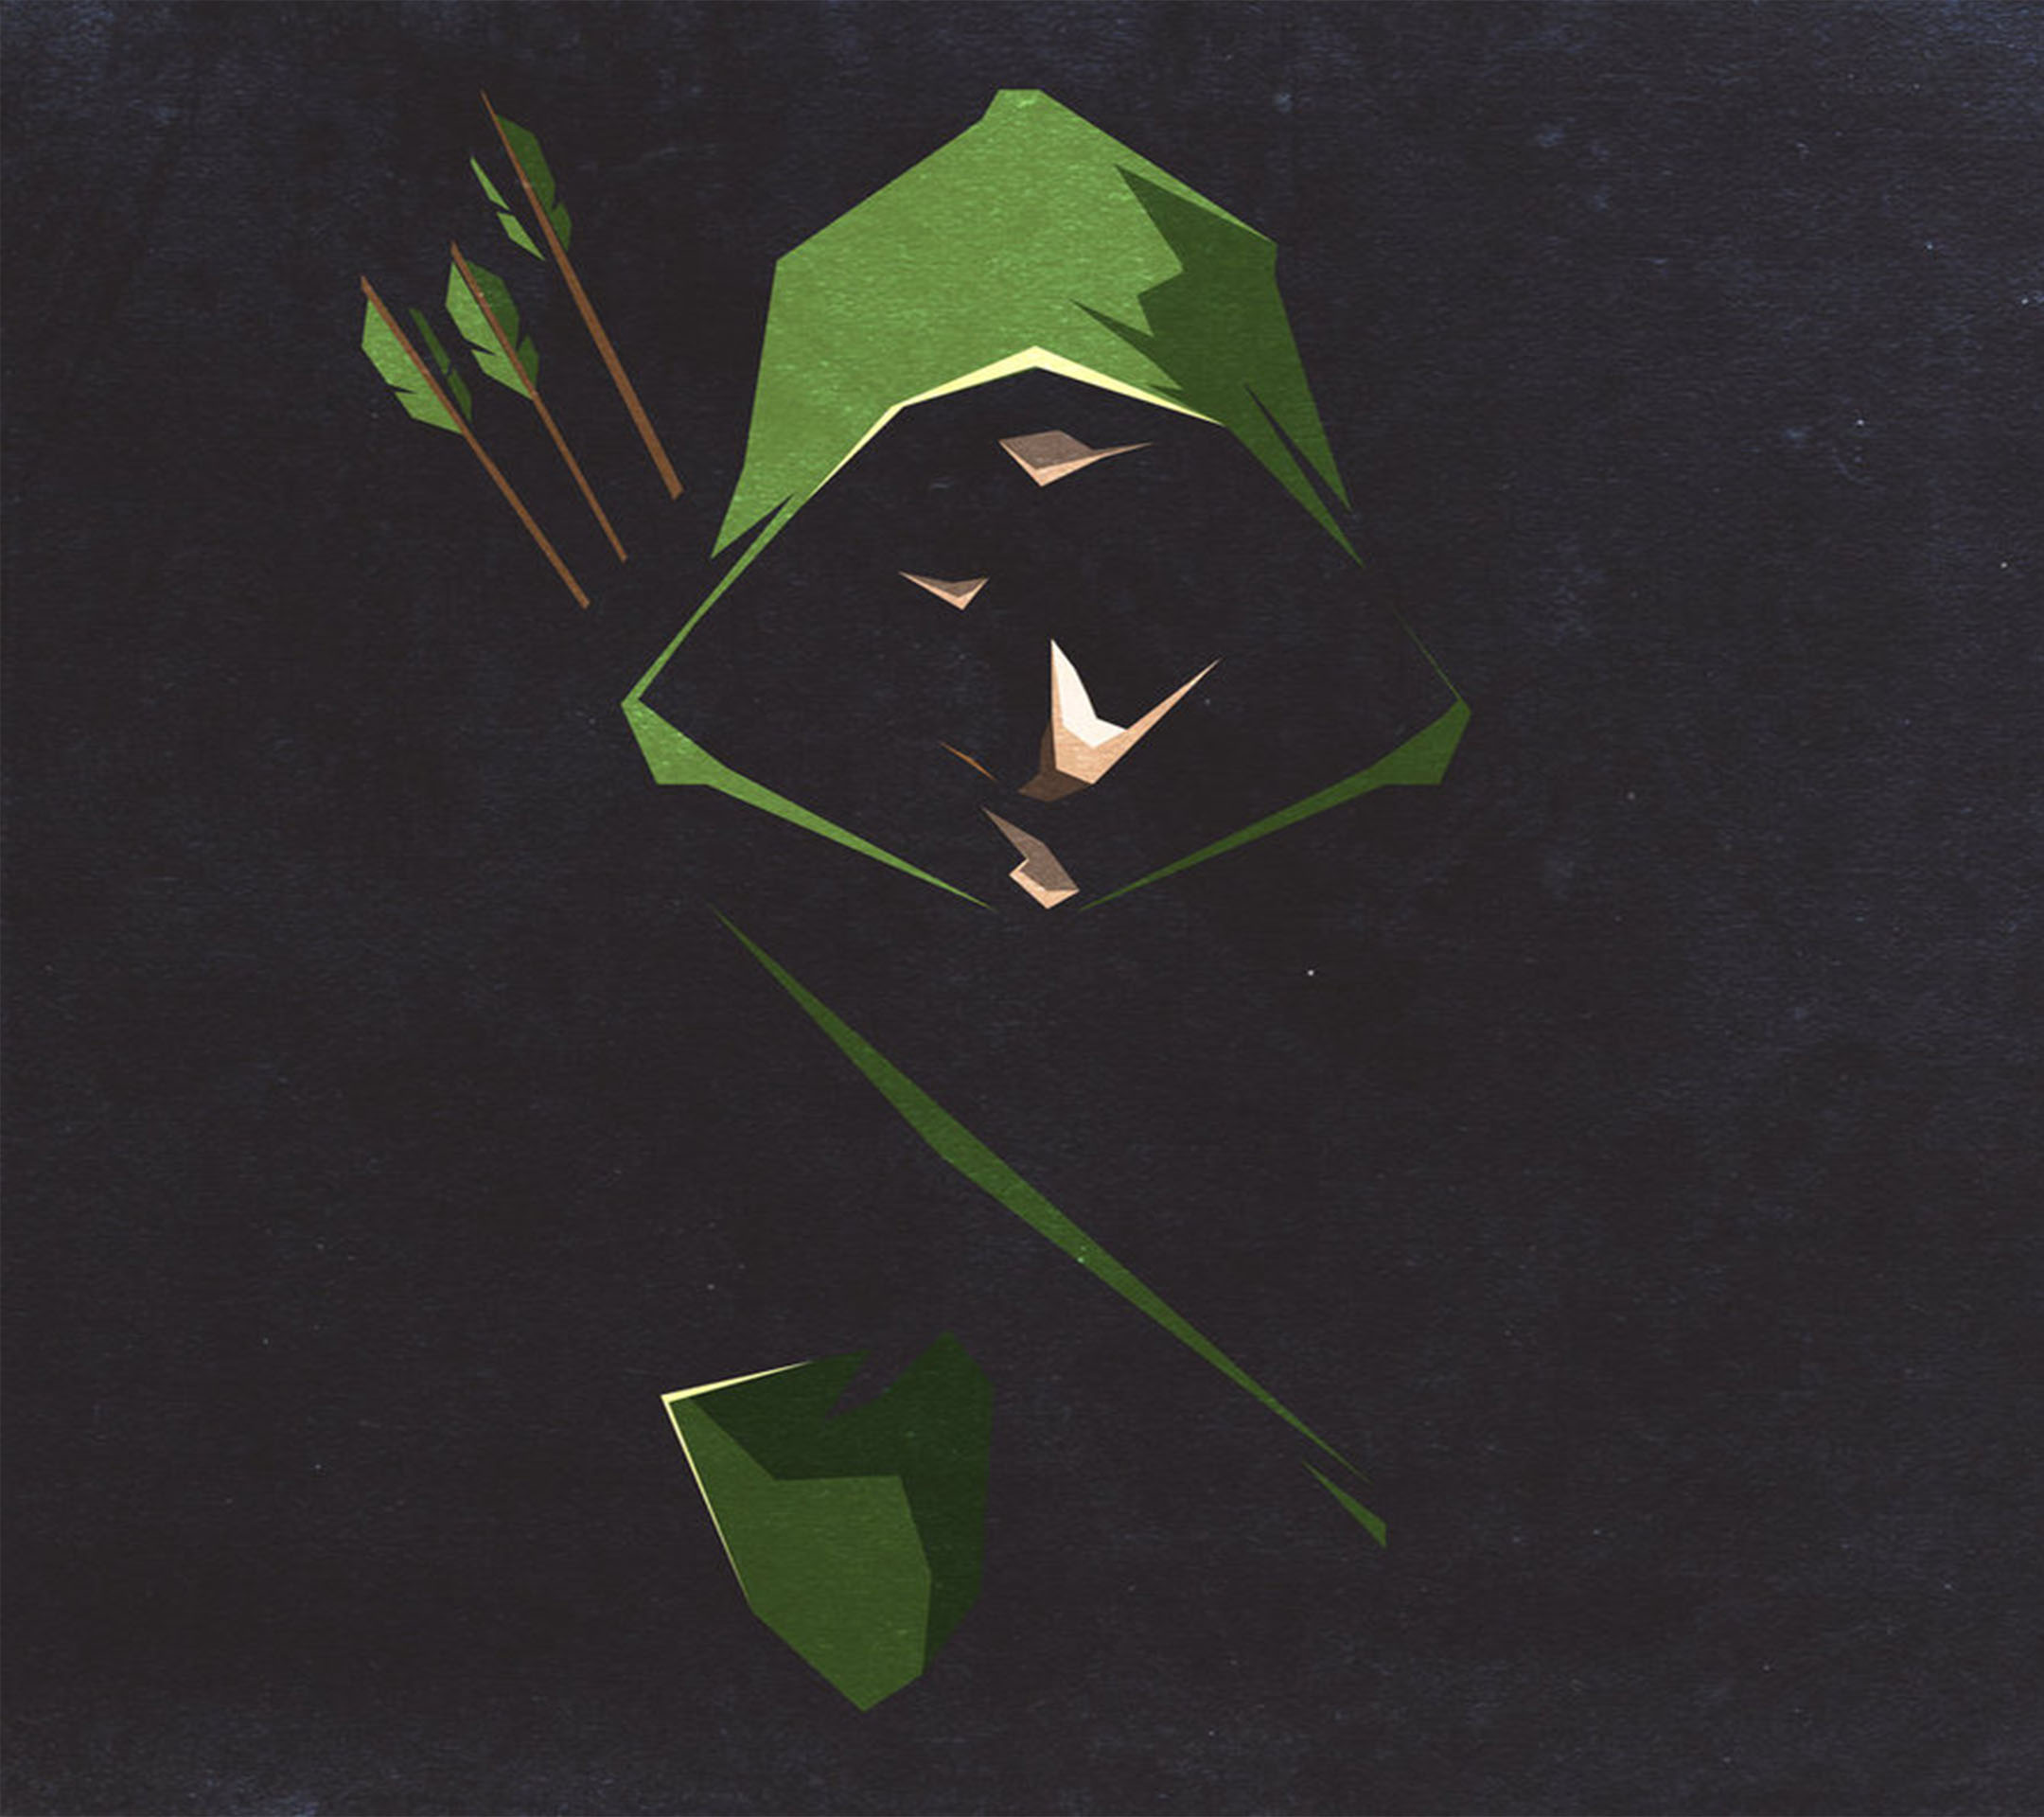 Daily hd wallpaper Green Arrow [2160x1920] 2160x1920